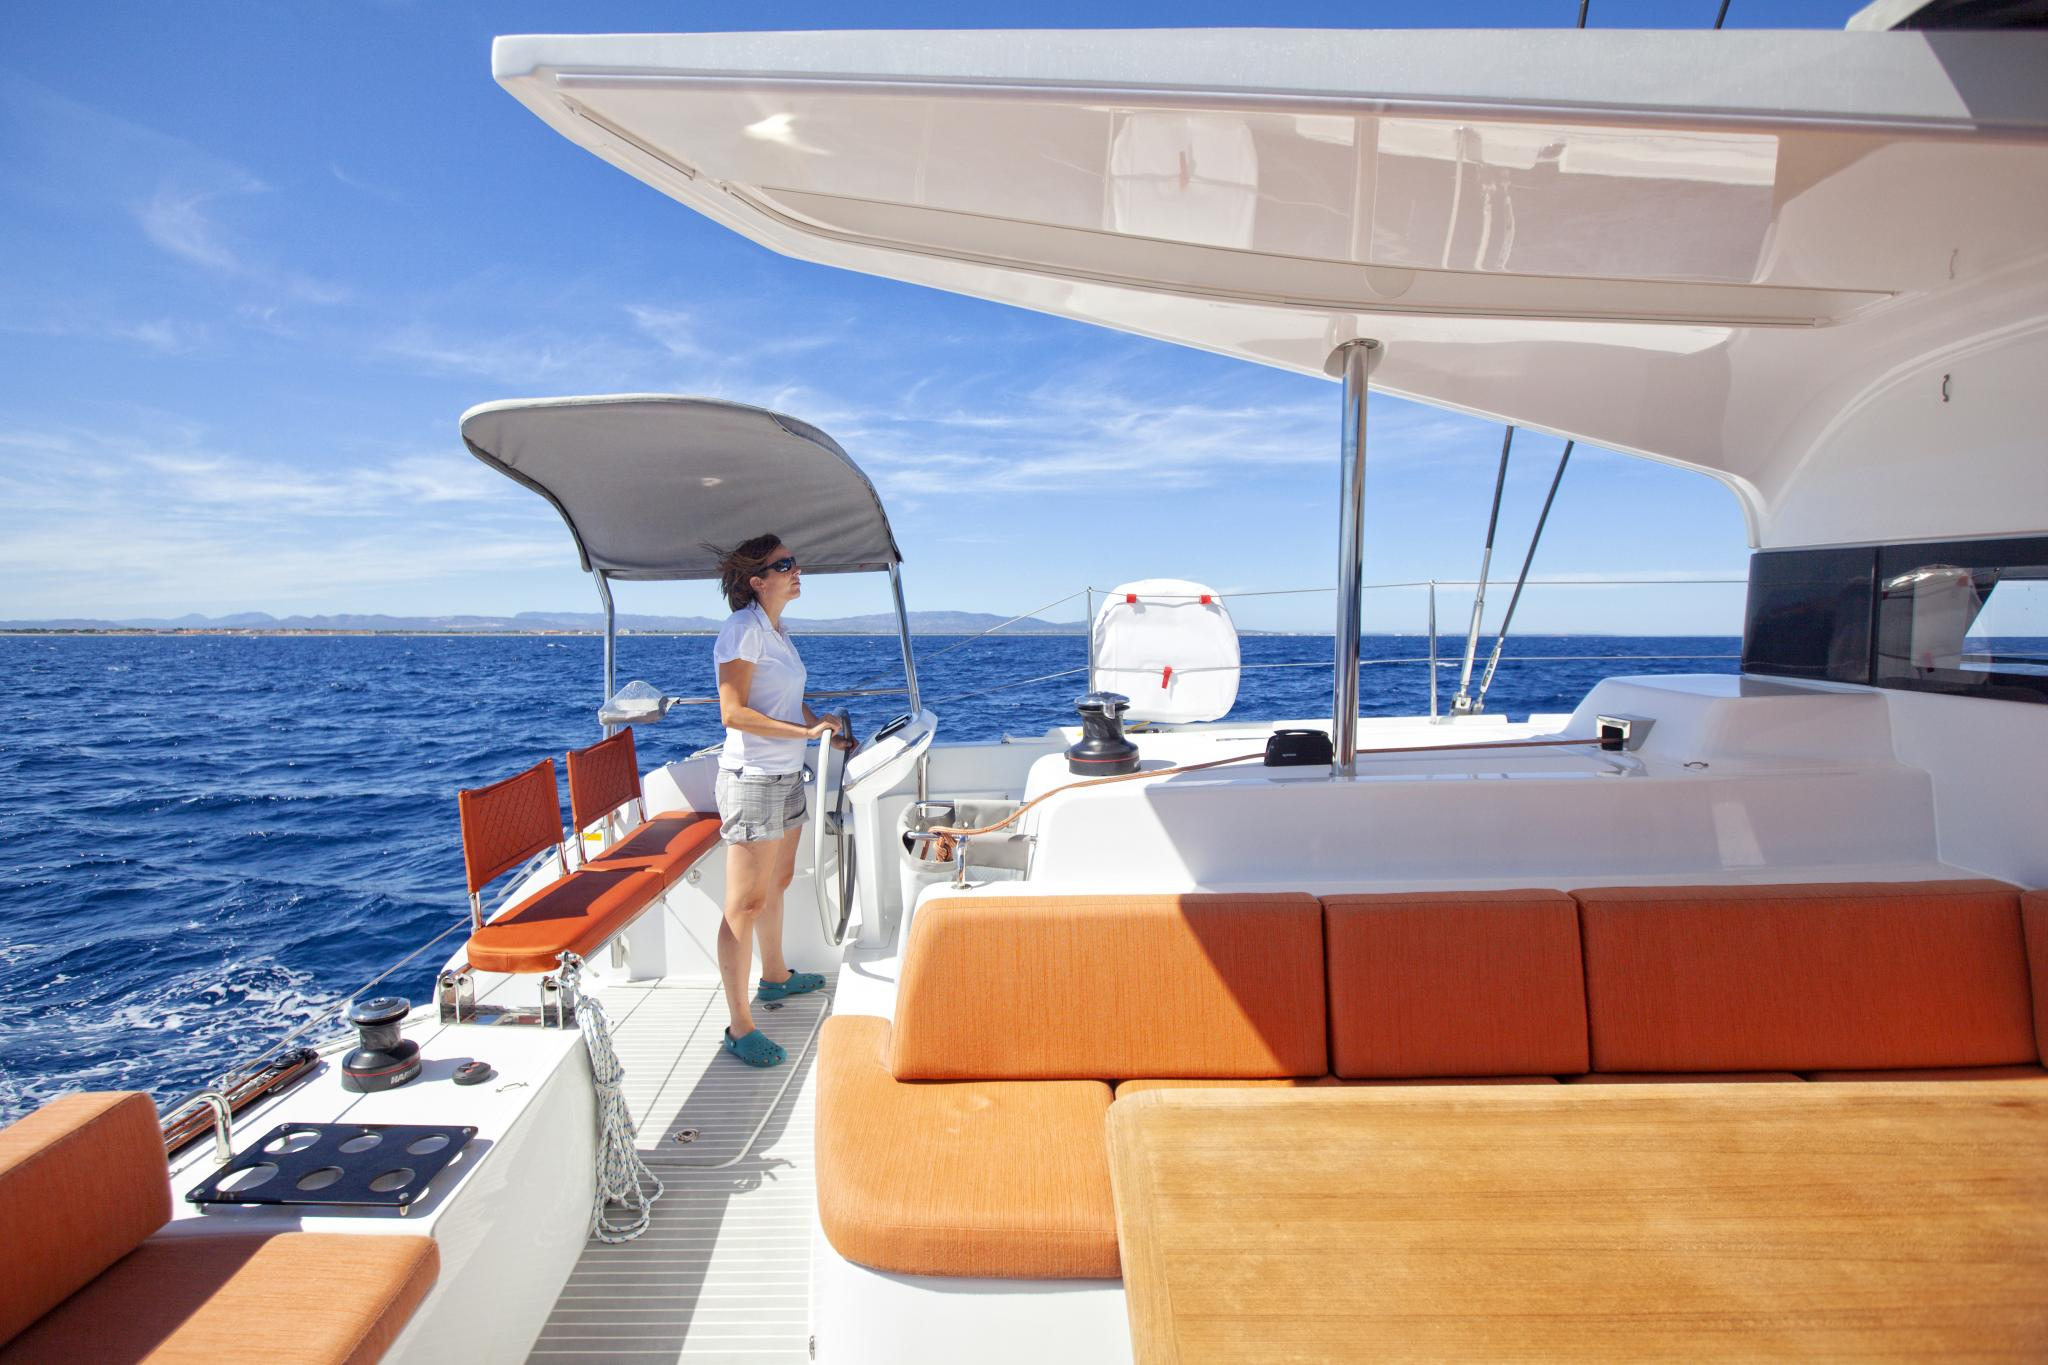 Excess catamaran 15.Excess world and explore perfectly designed catamarans inspired by racing for cruising pleasure.